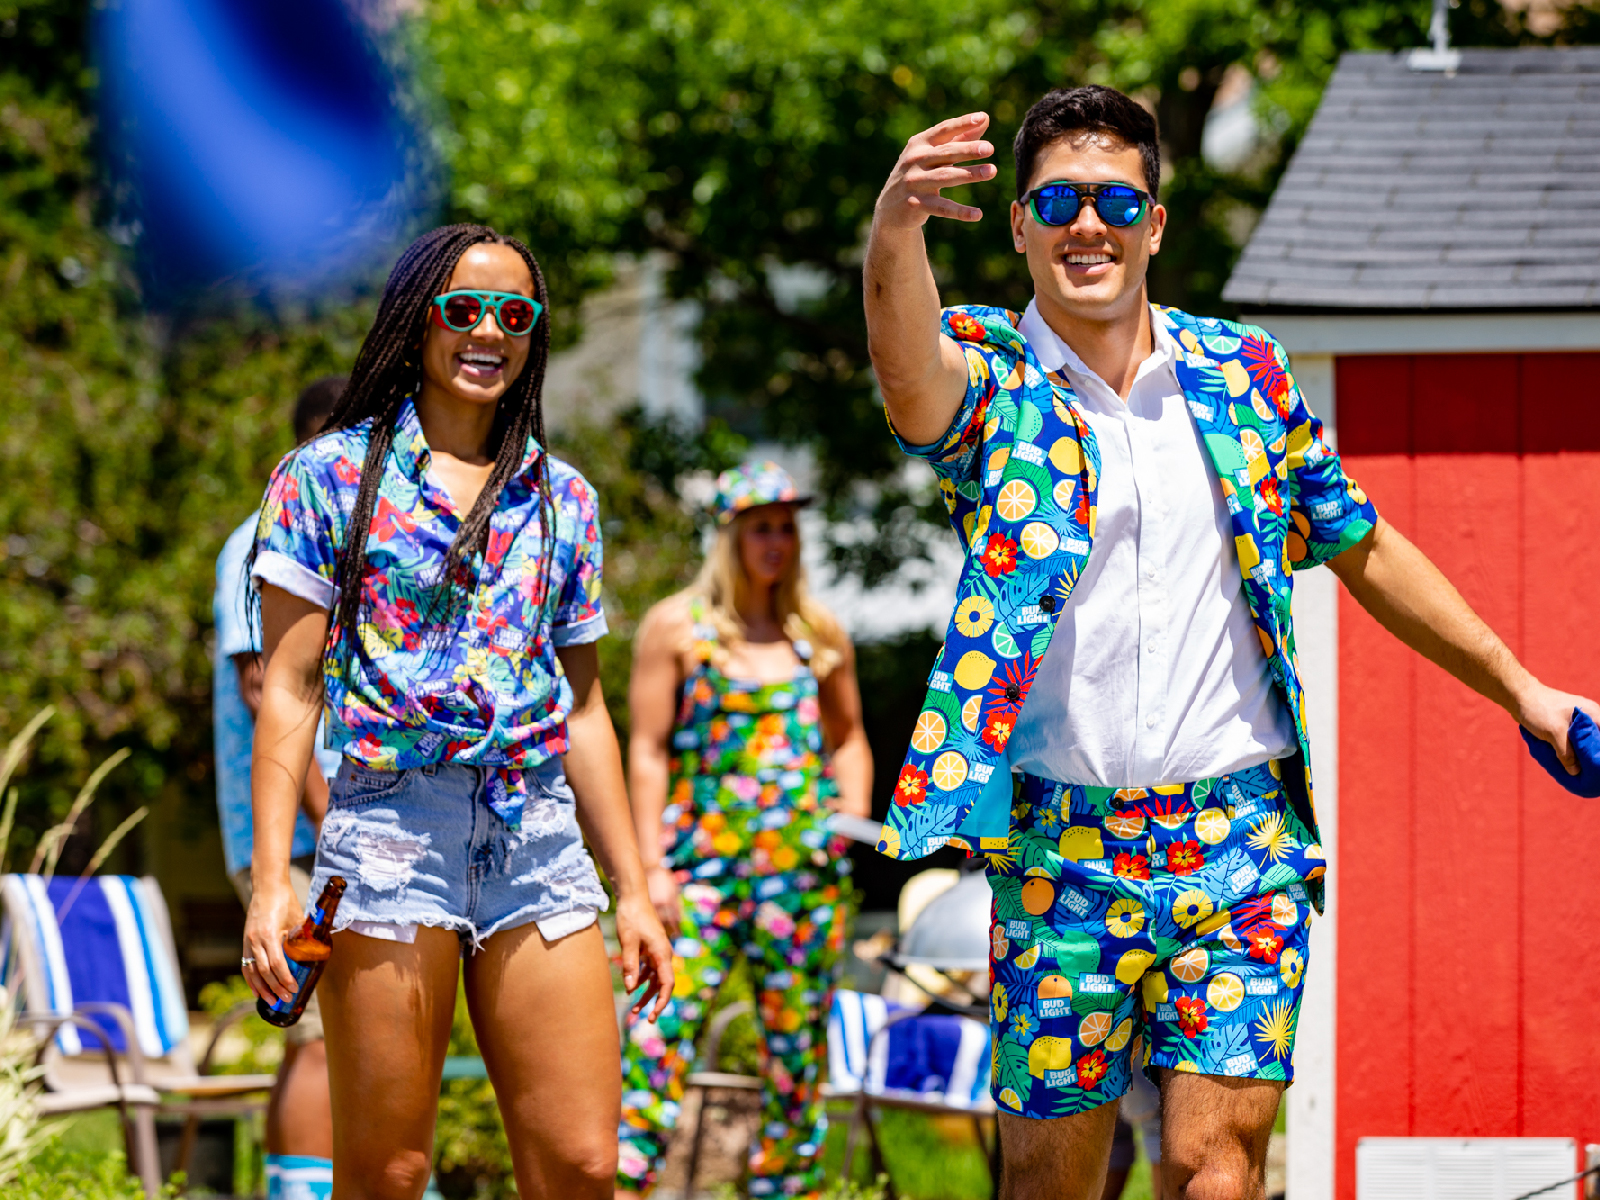 Bud Light's 'Pajameralls' Are Sure to Turn Heads At Your Next Cookout bud-light-blazer-FT-BLOG0719